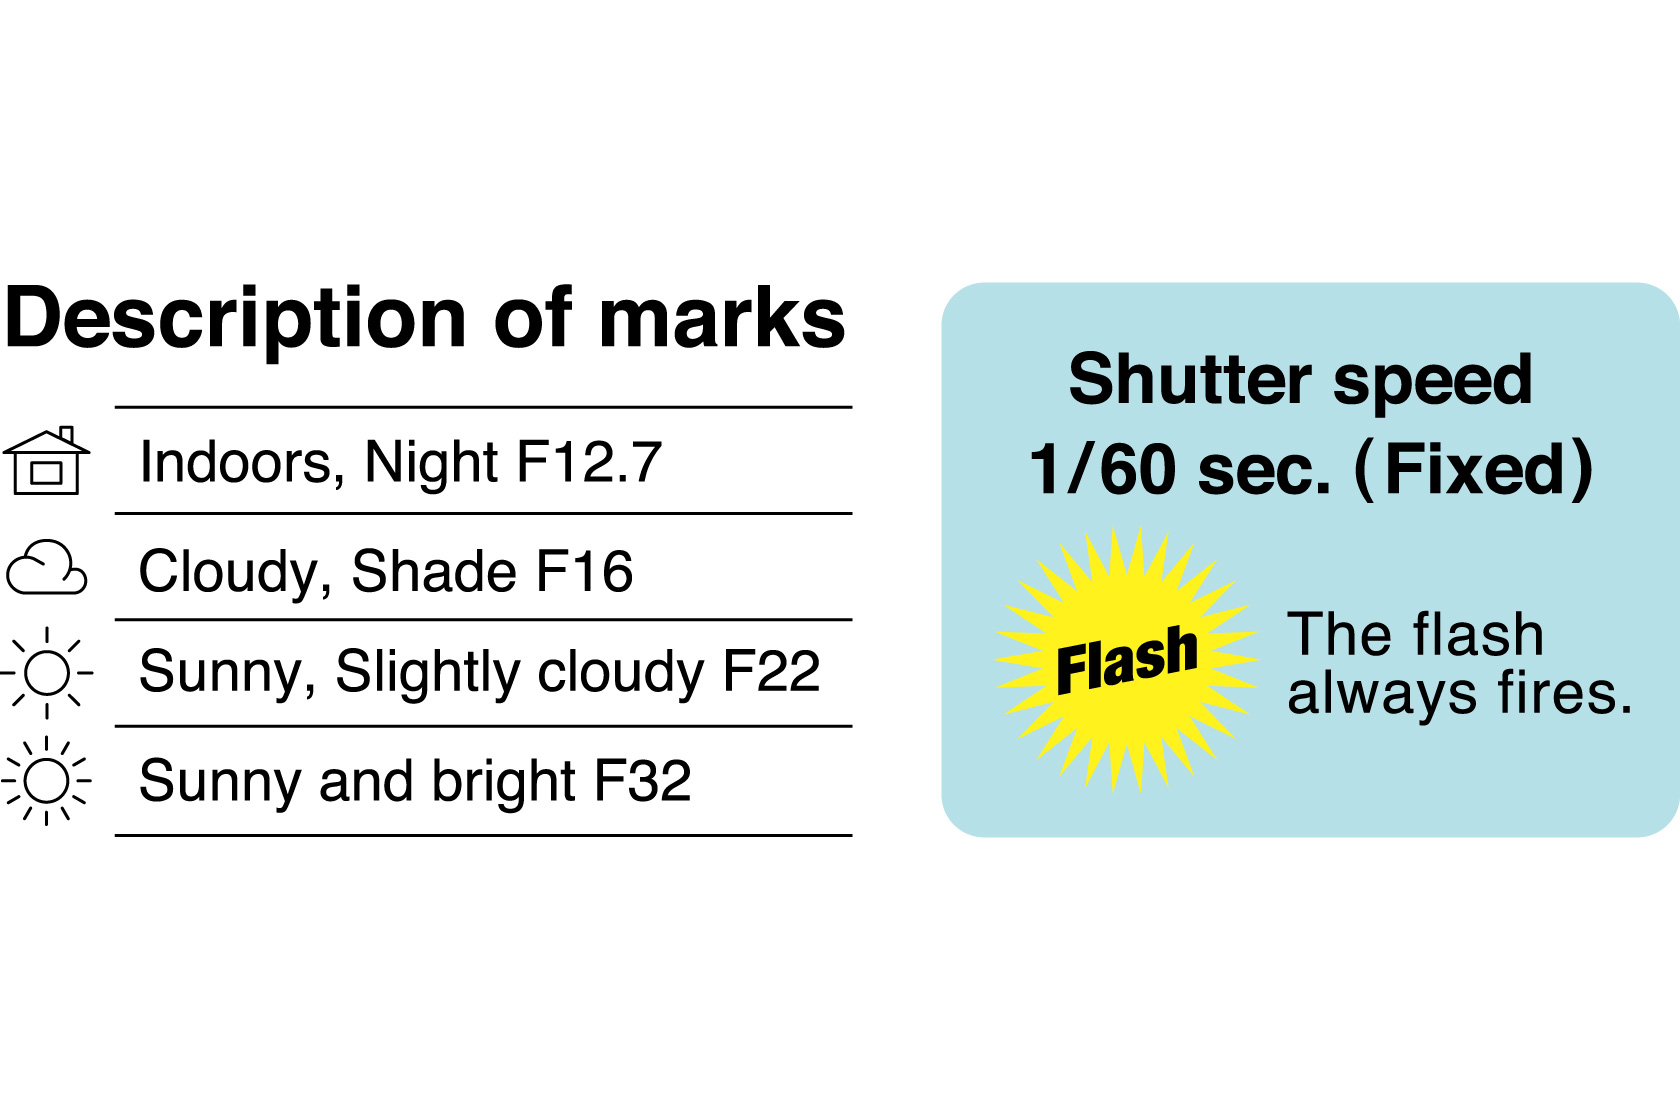 [image] Information on the Instax Mini 9 camera including descriptions of marks and the shutter speed